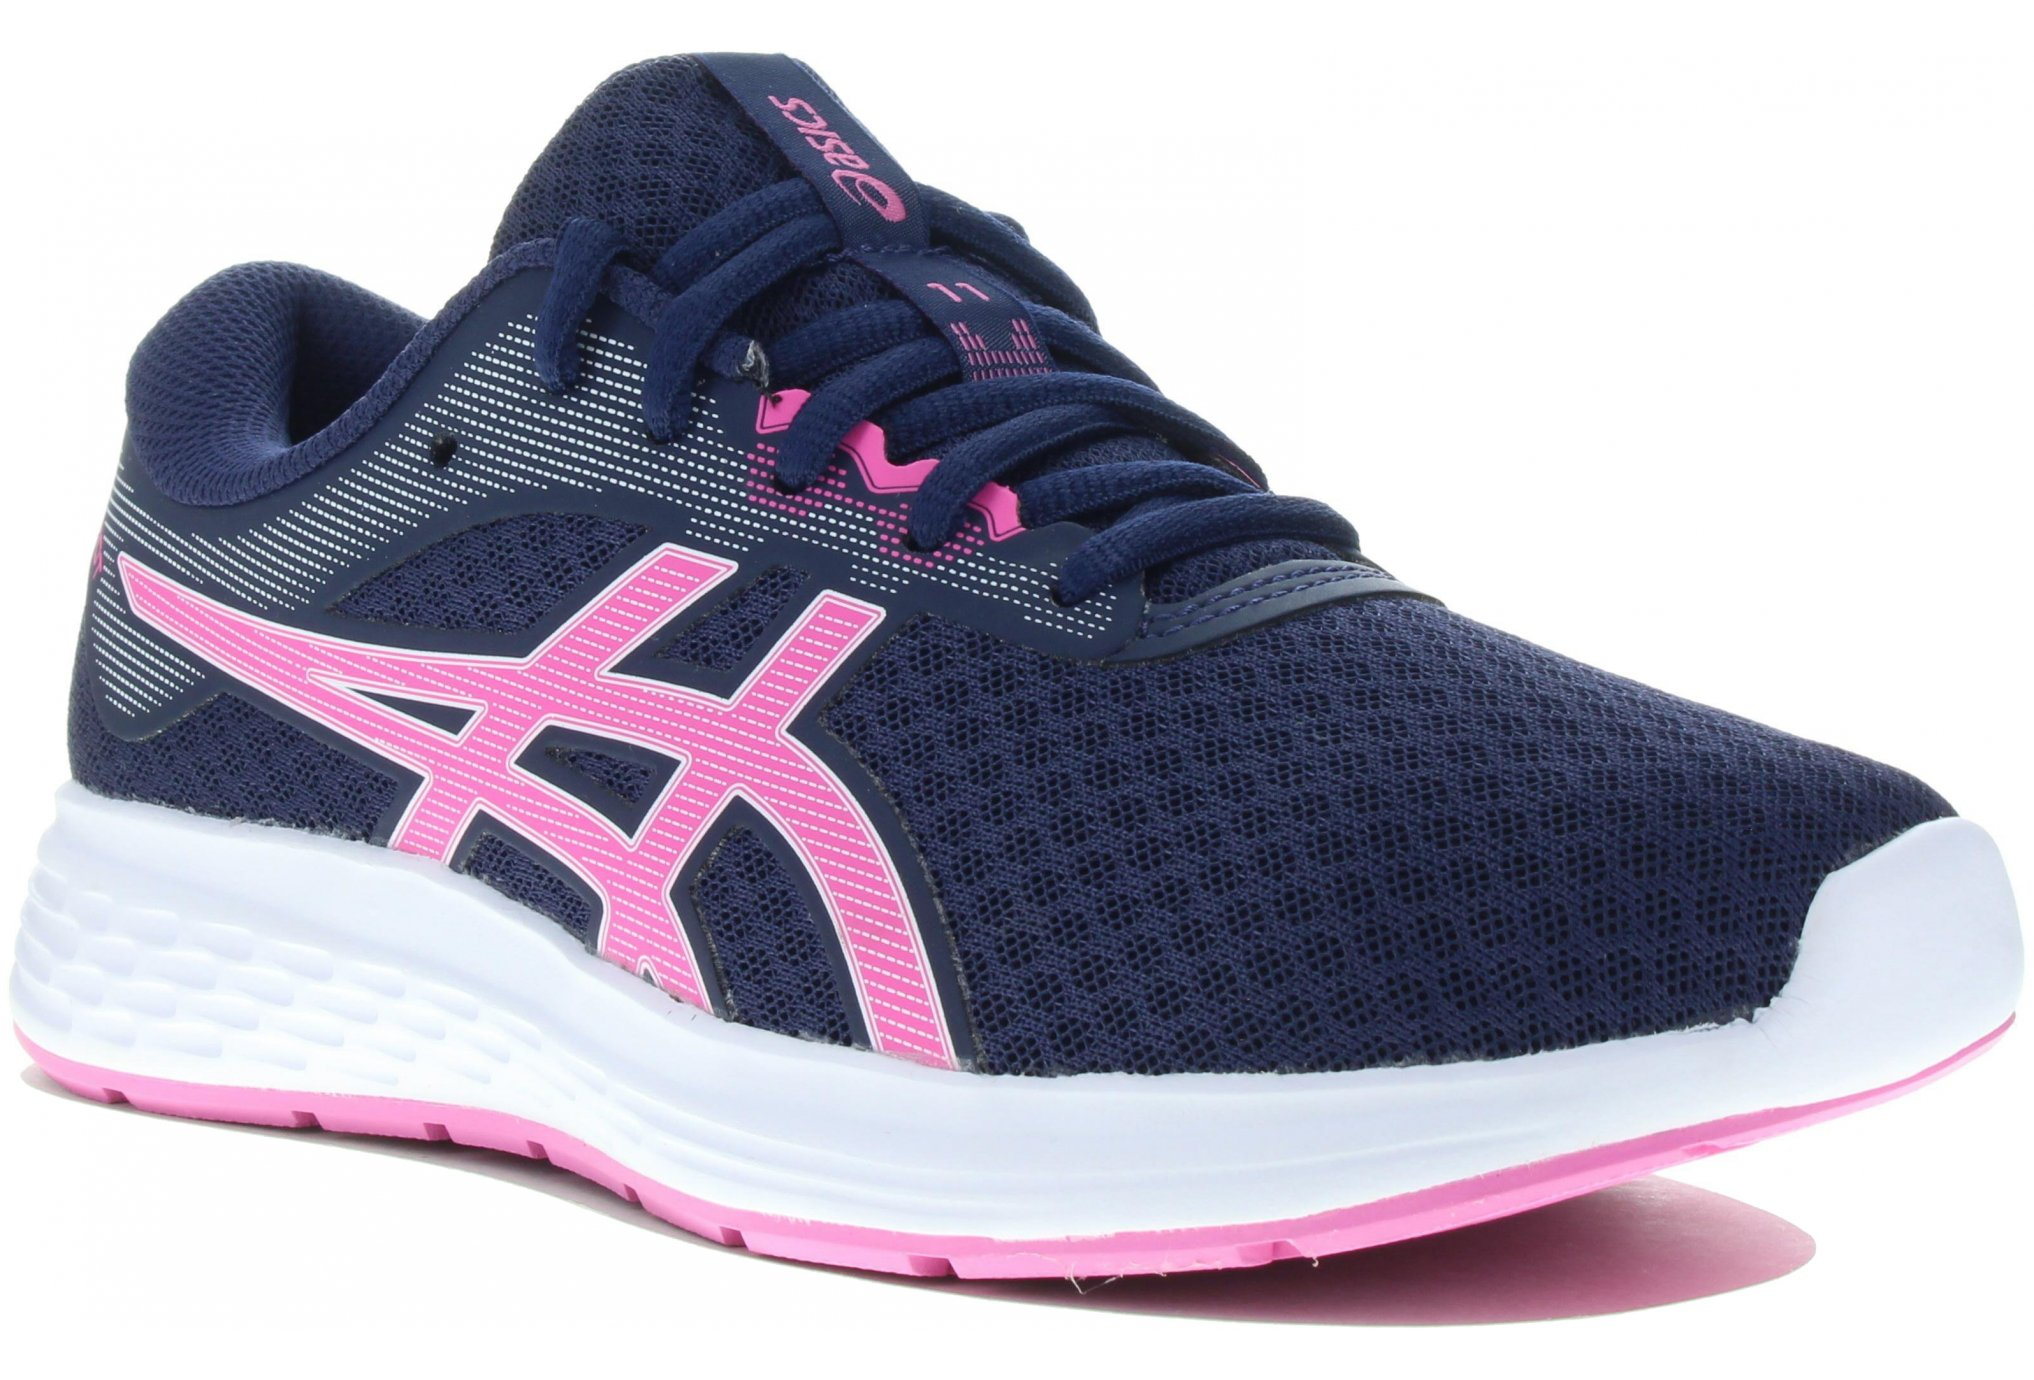 Asics Patriot 11 Fille Chaussures running femme